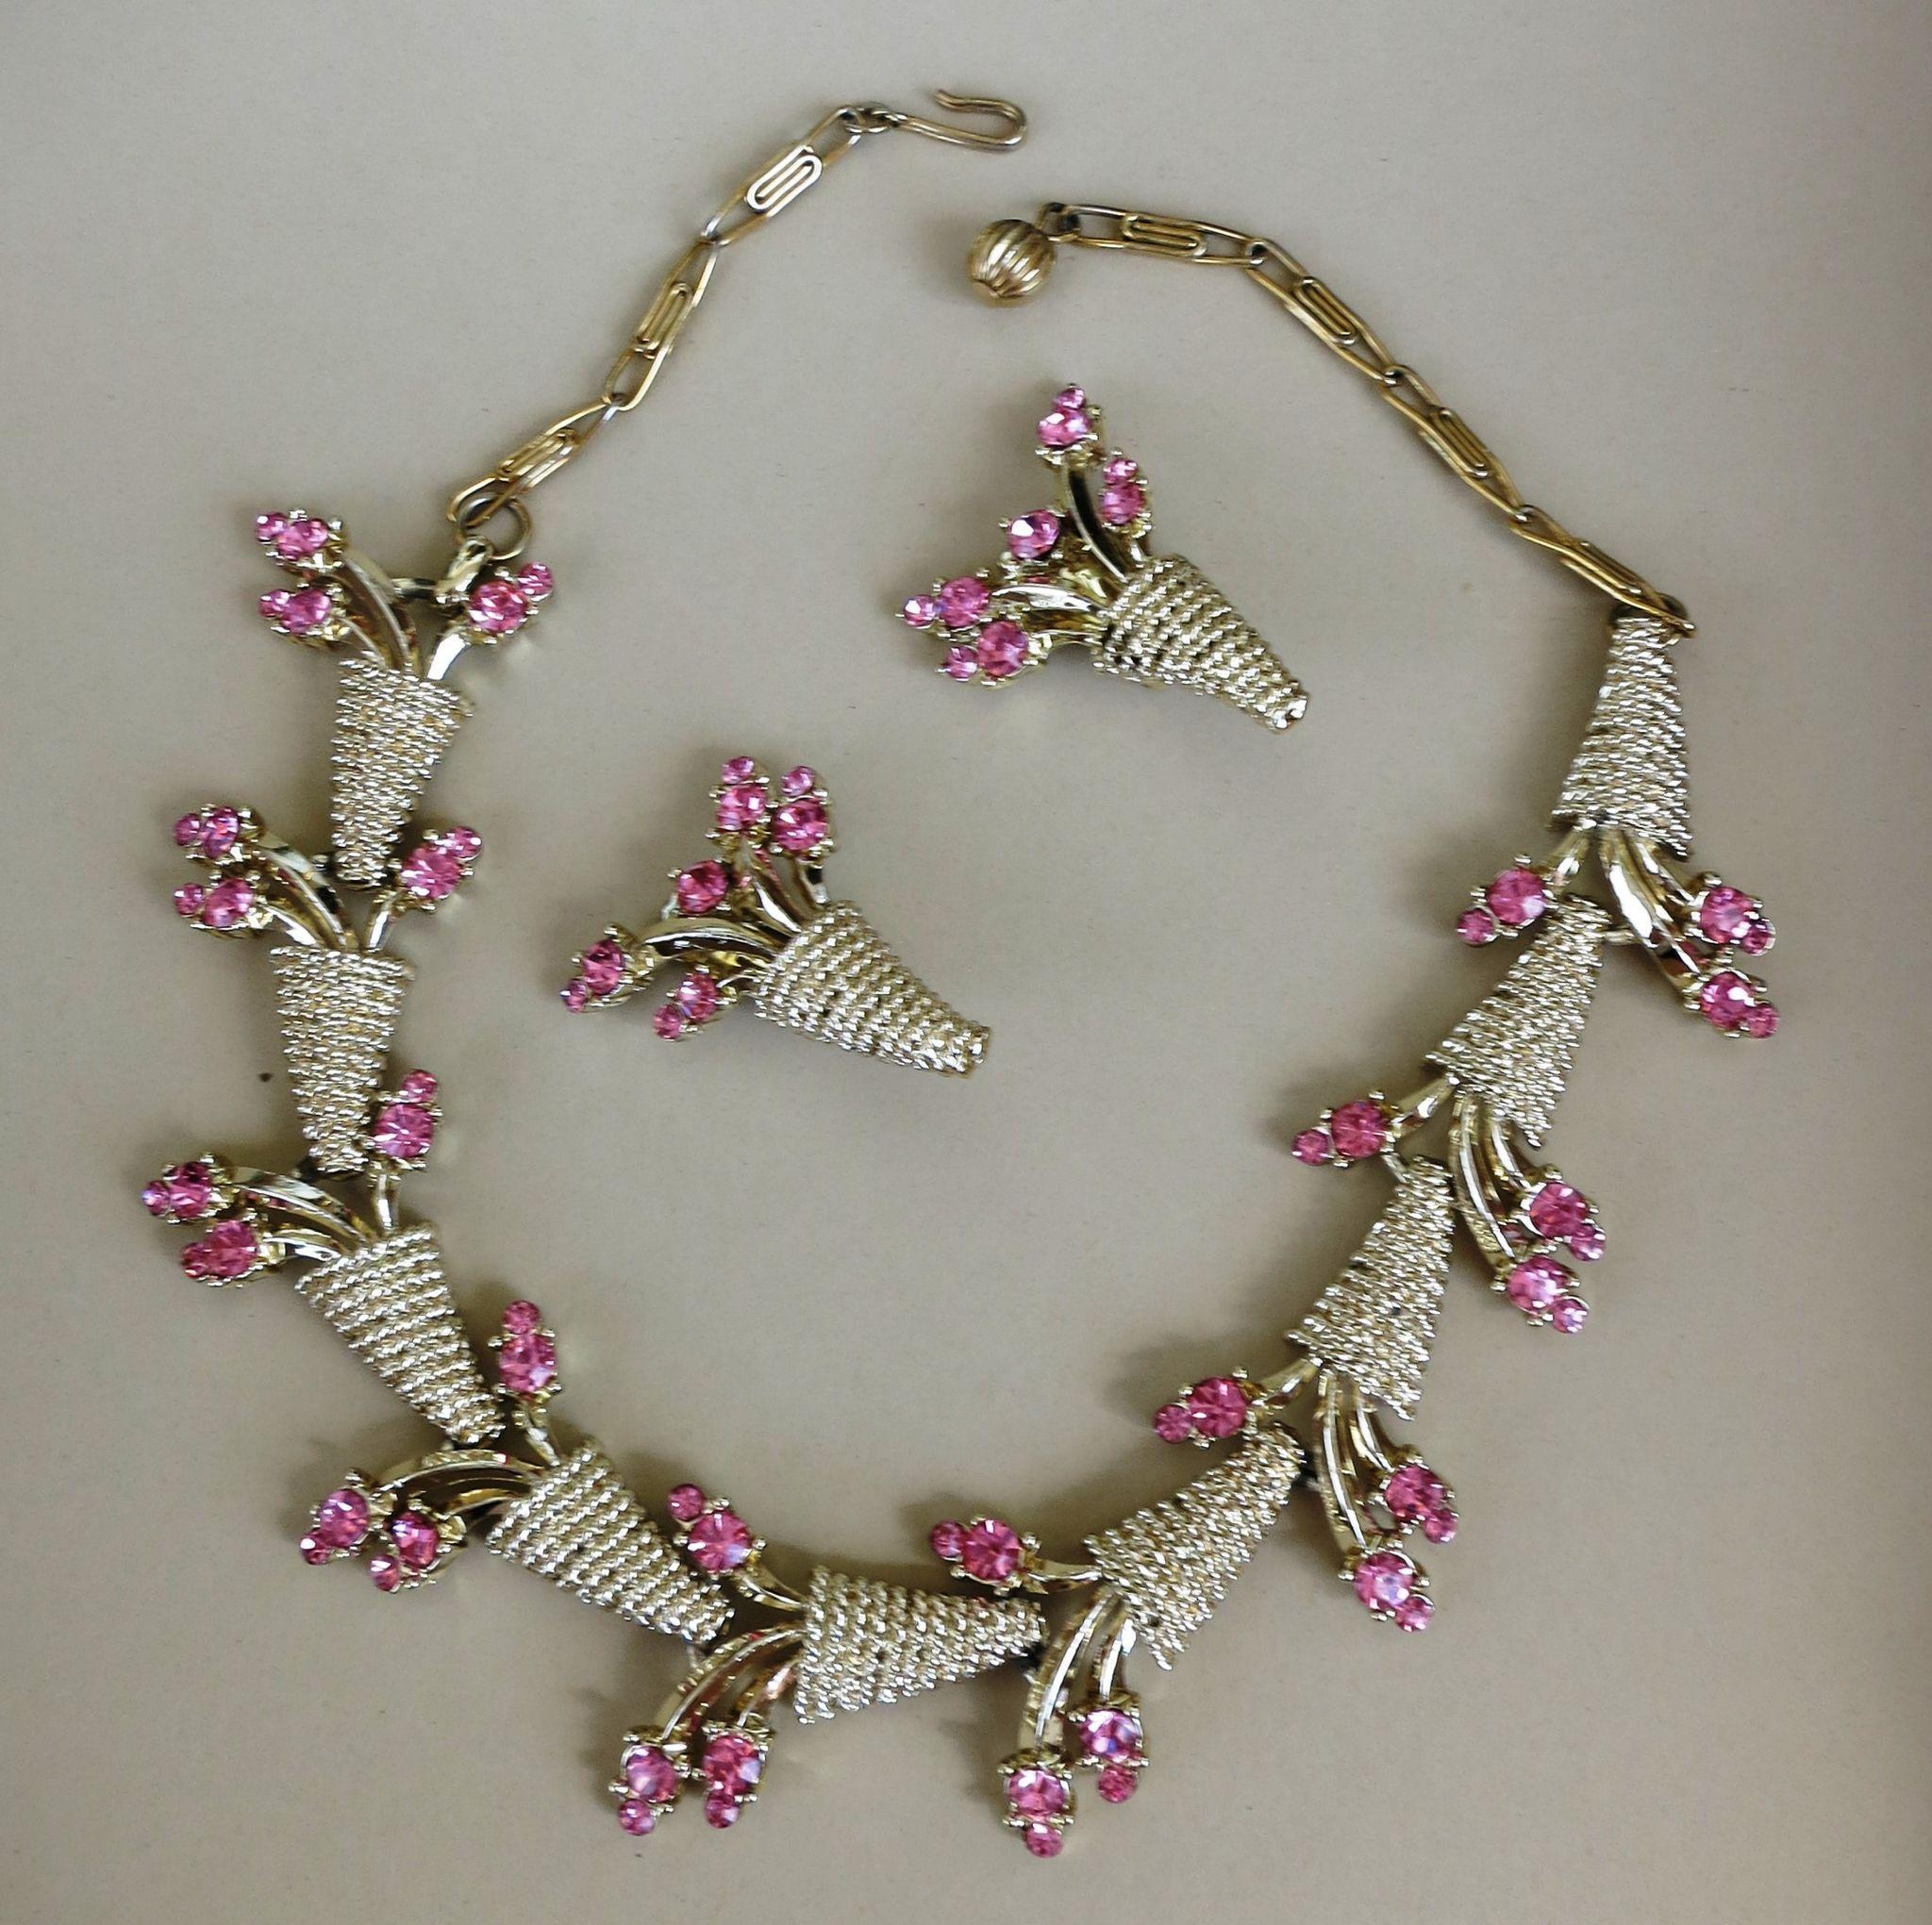 VINTAGE 60'S Unsigned Beauty Rhinestone Set Pink Flowers